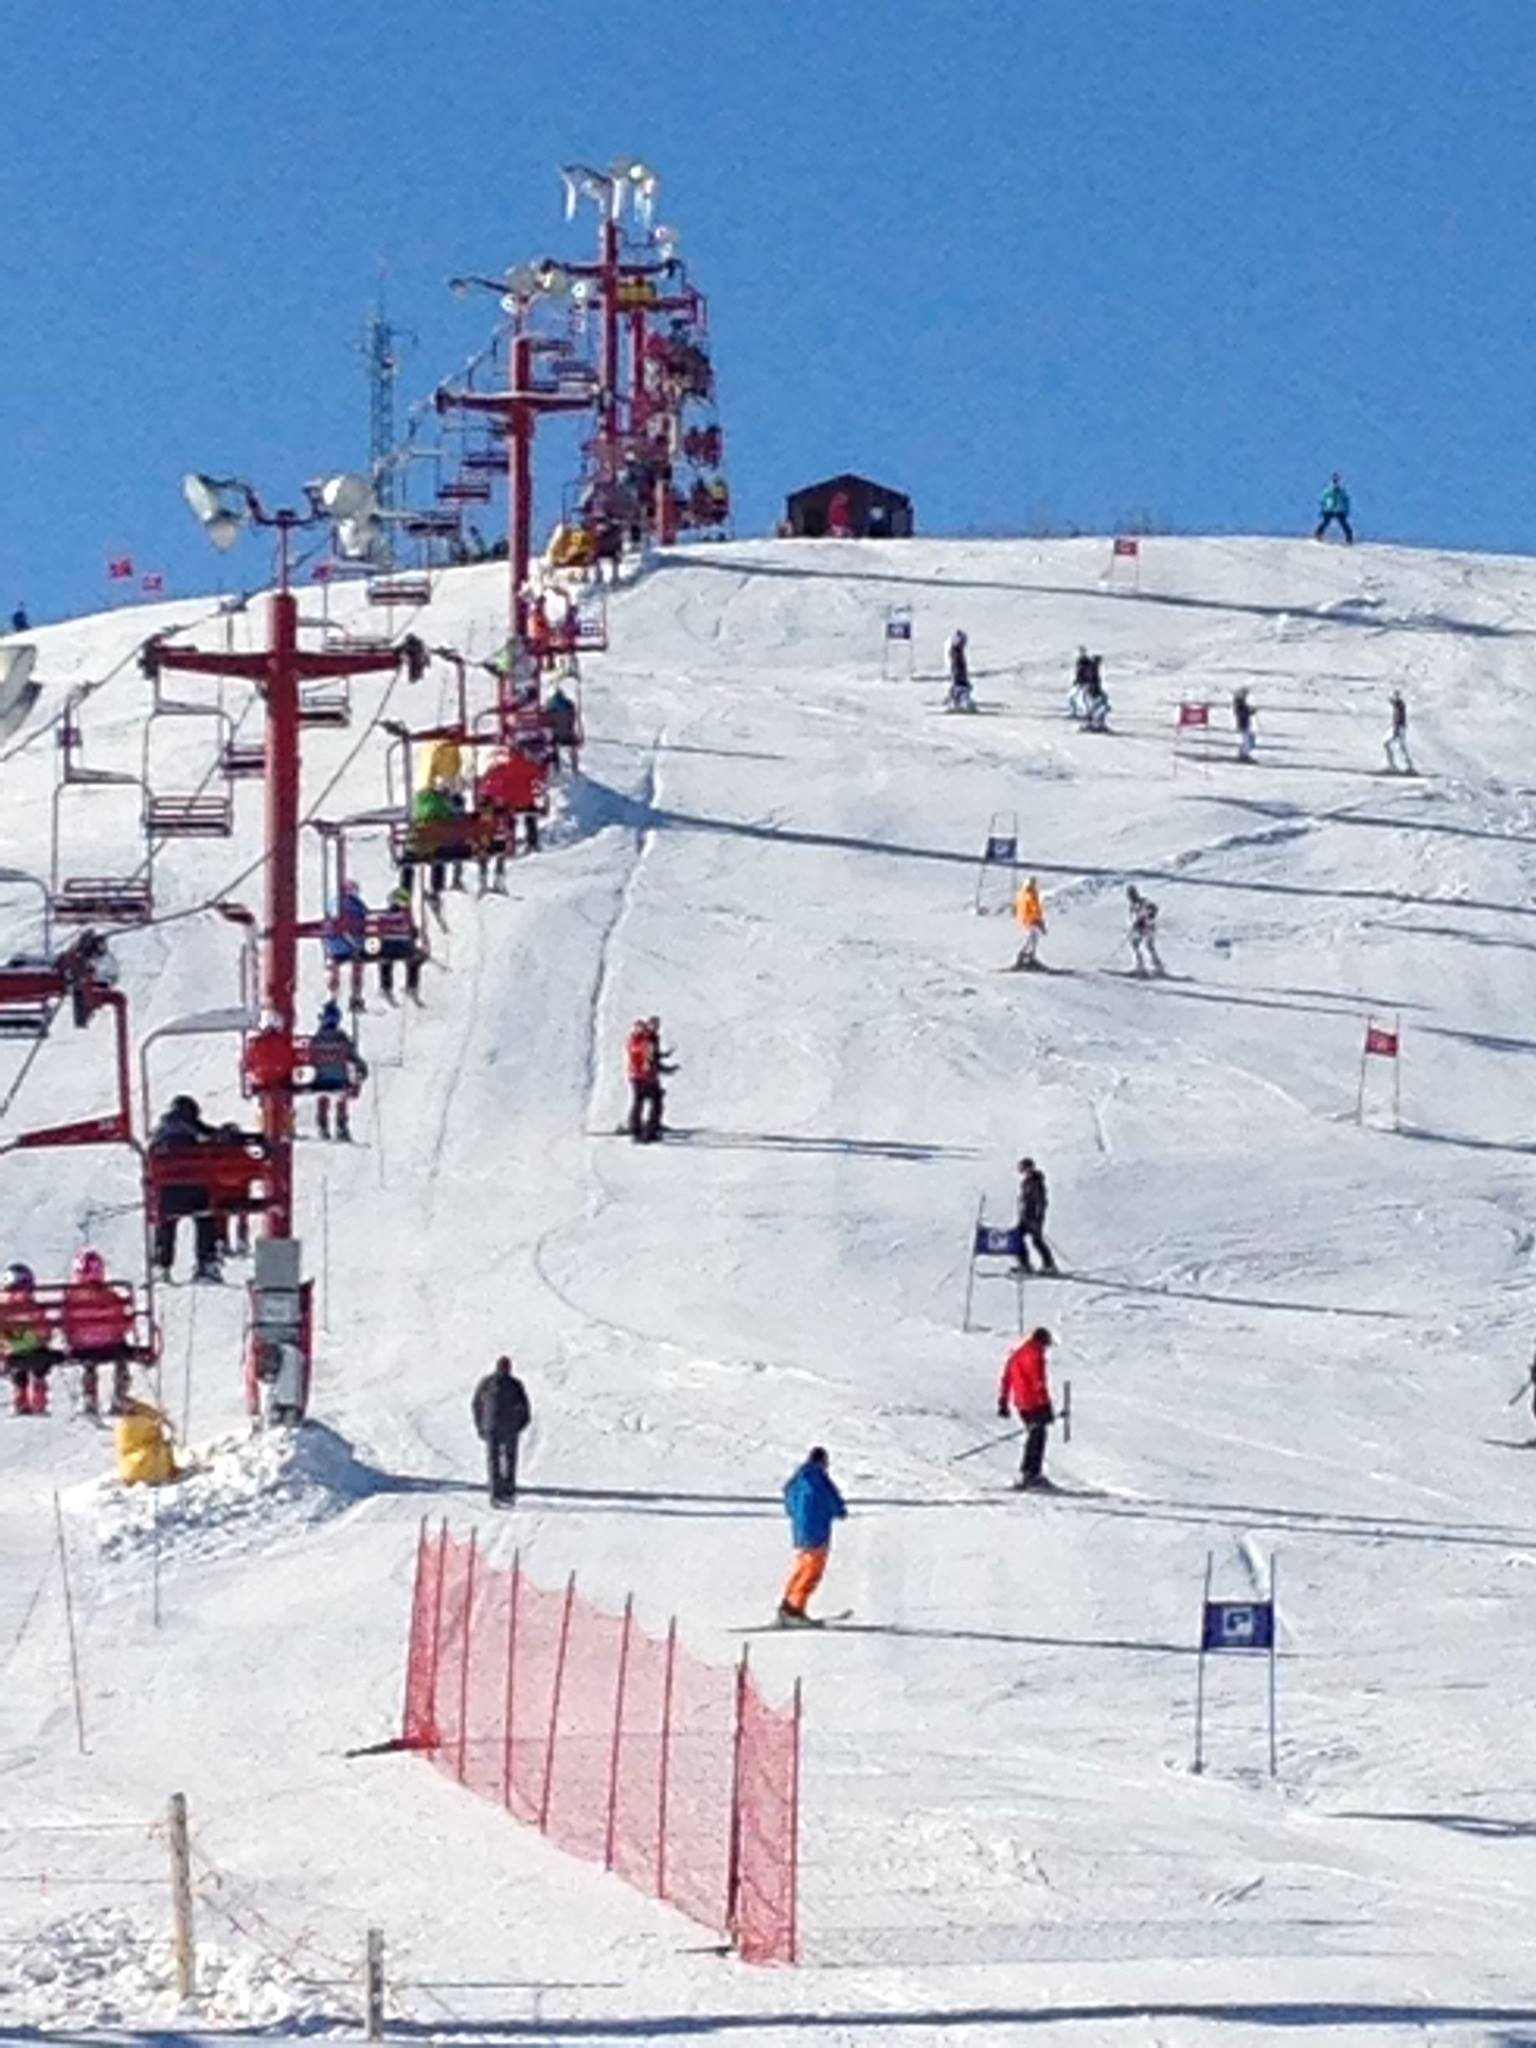 13-Year-Old Airlifted from Wisconsin Ski Area Following